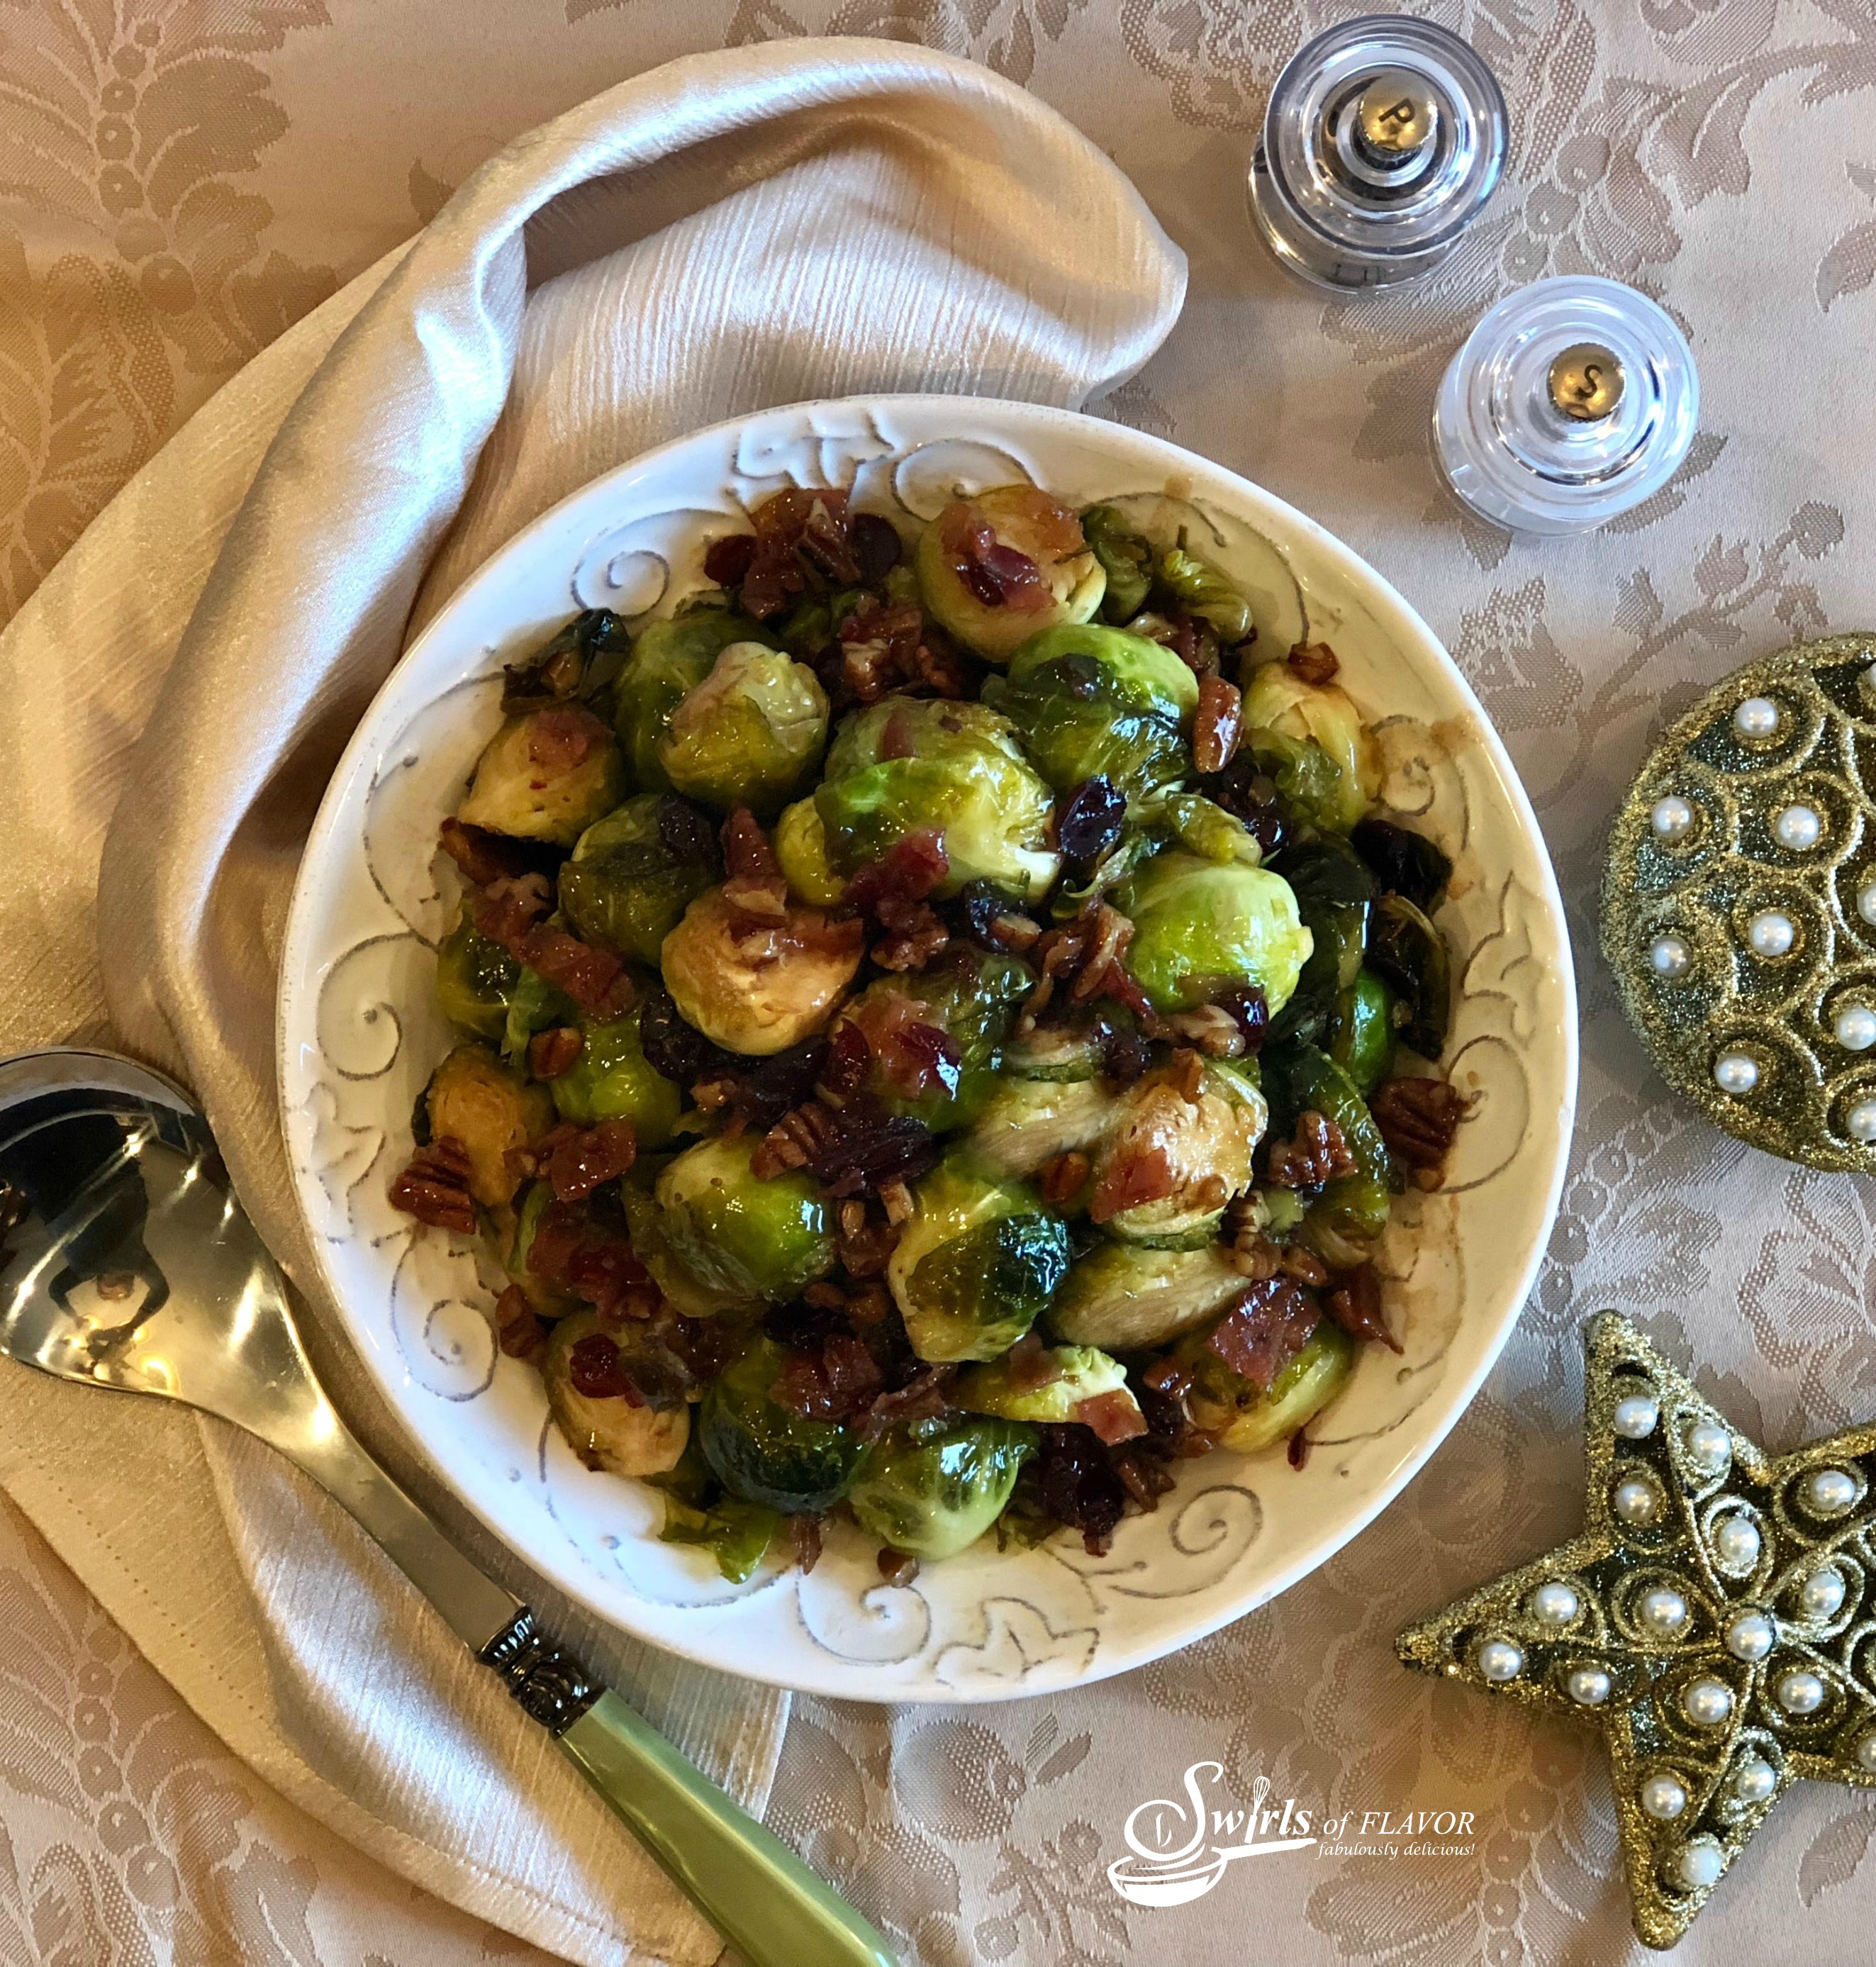 Brussel Sprouts with brown sugar and bacon in white bowl